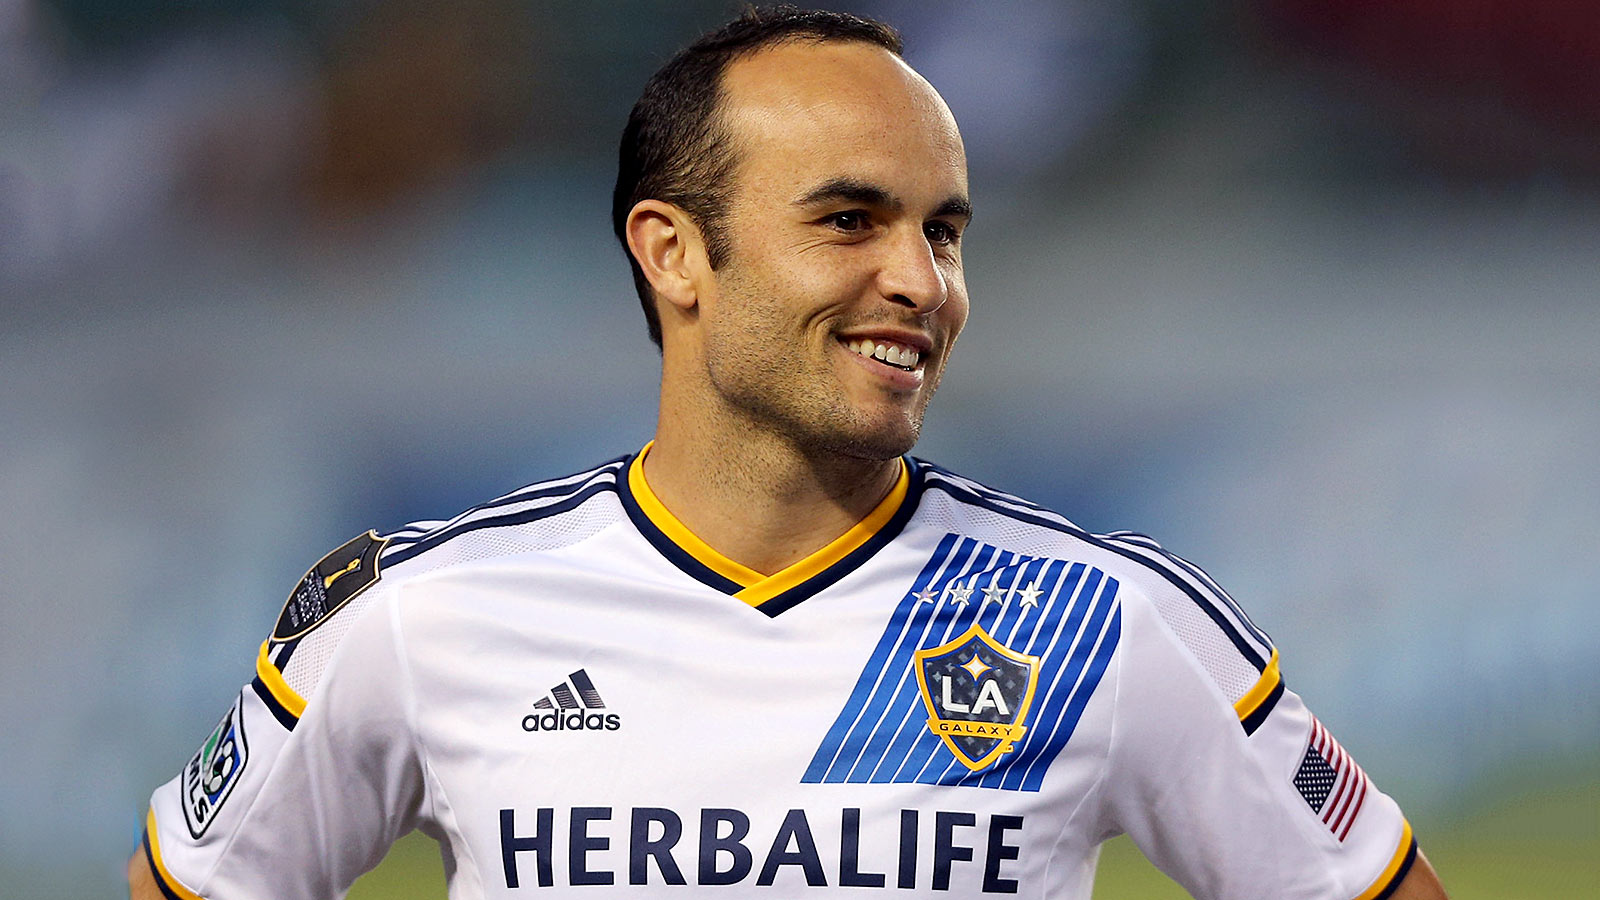 080714-SOCCER-galaxy-landon-donovan-looks-on-ahn-PI